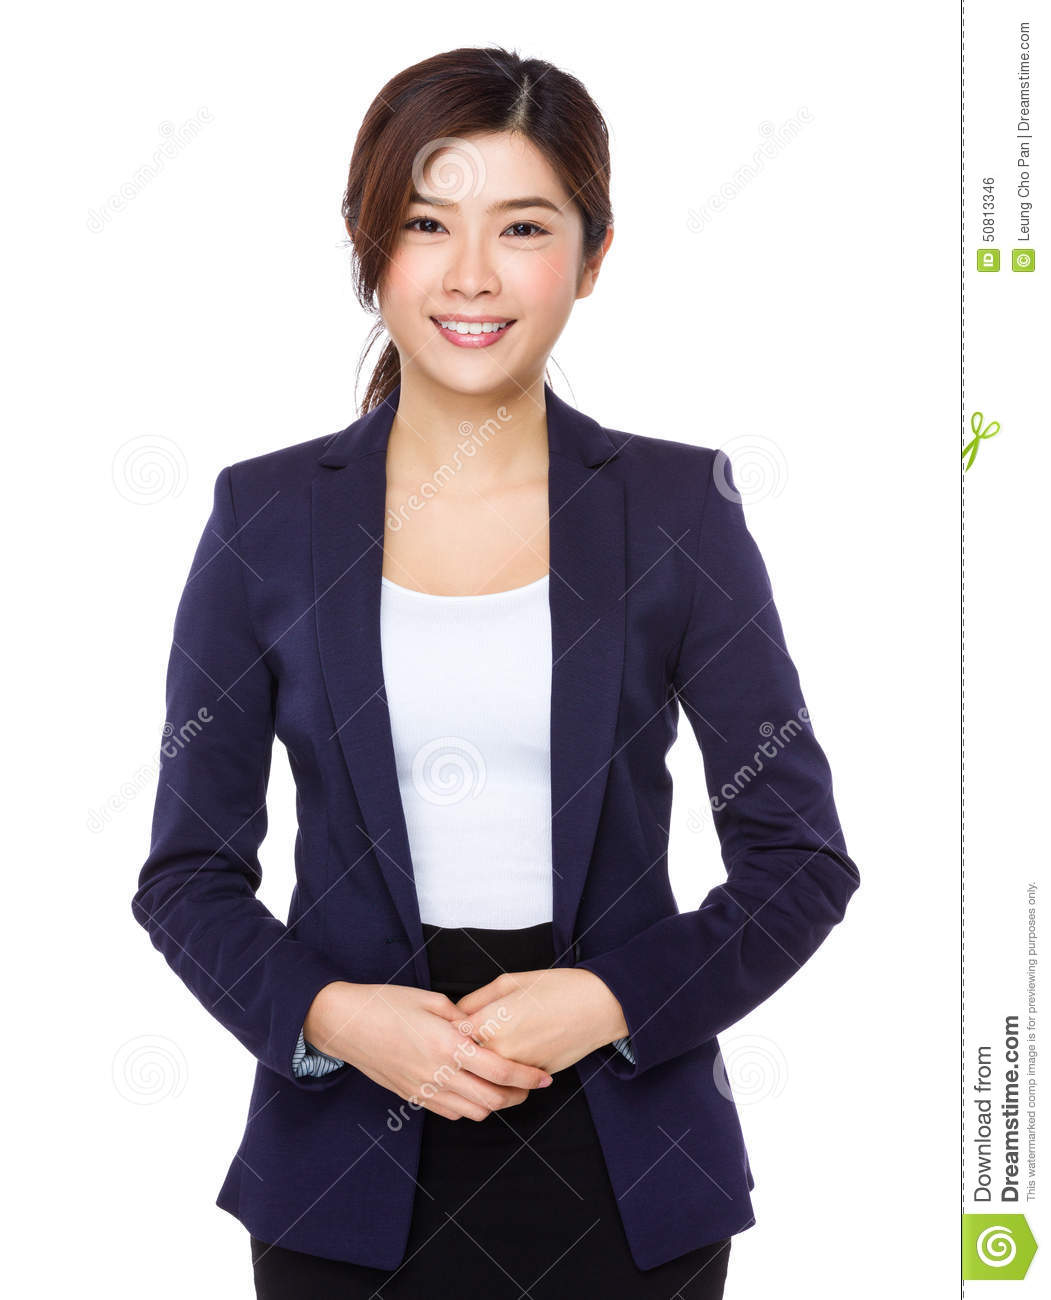 2 business woman